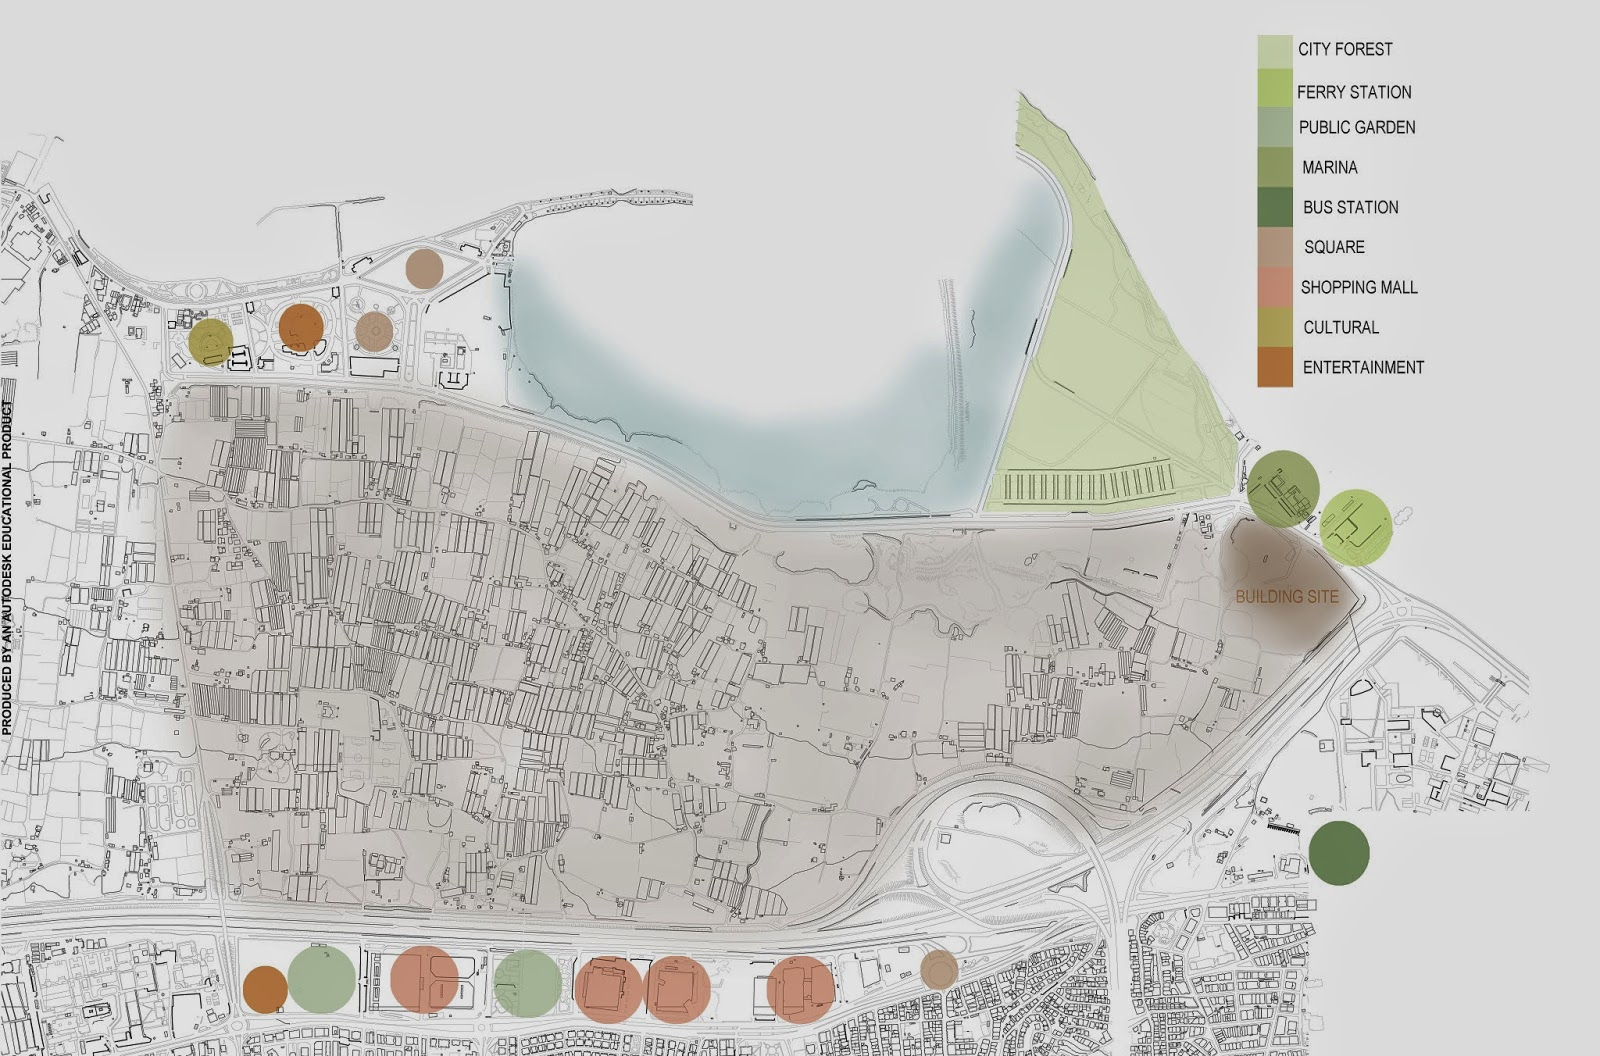 use land analysis for out of site that shows functions of spaces shopping malls ferry station and lagoon play